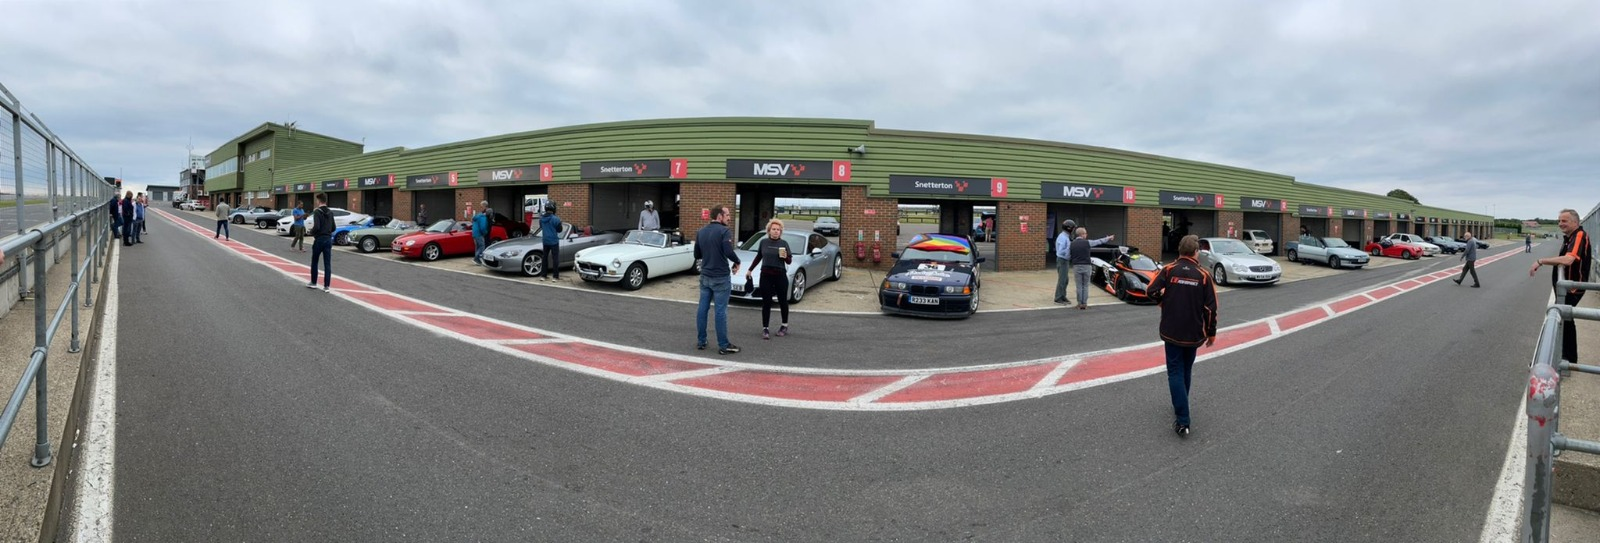 GCCG Track Day car lineup